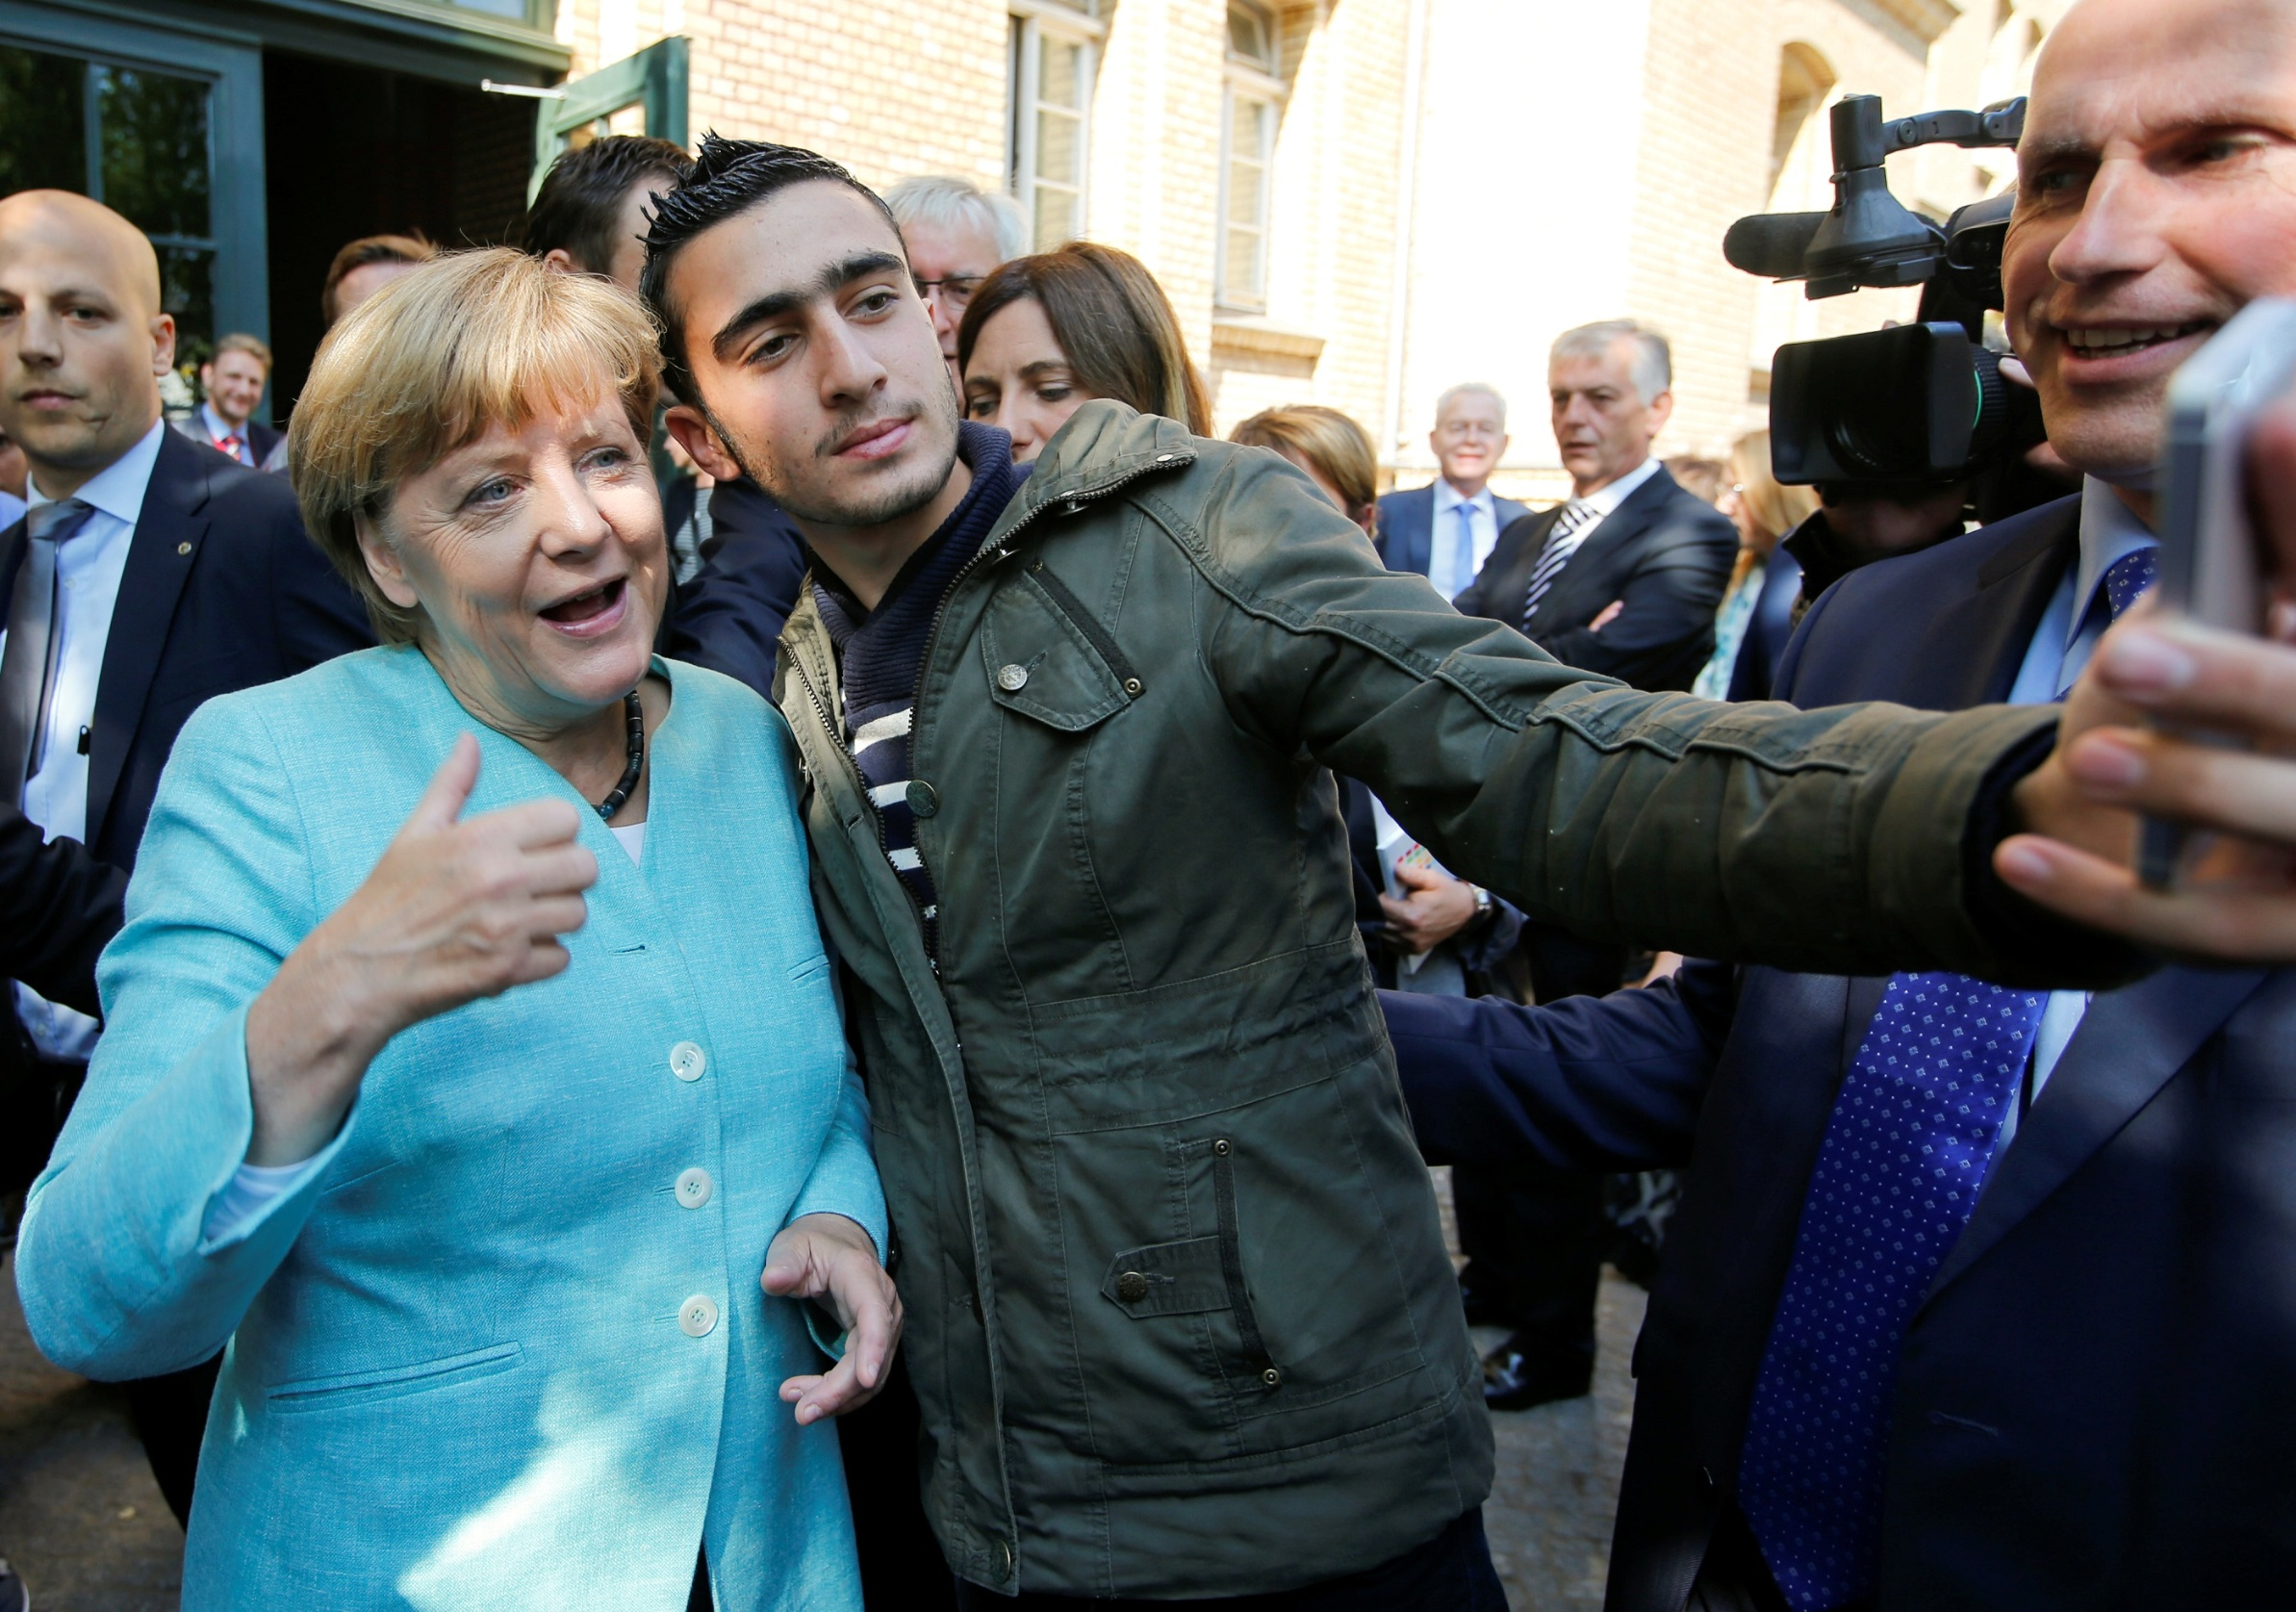 FILE PHOTO: Syrian refugee Anas Modamani takes a selfie with German Chancellor Angela Merkel outside a refugee camp near the Federal Office for Migration and Refugees after registration at Berlin's Spandau district, Germany September 10, 2015.  A German court will on February 6, 2017 hold its first hearing in the case of a Syrian refugee who is suing Facebook after the social networking site declined to remove all posts linking him to crimes and militant attacks.  REUTERS/Fabrizio Bensch/File Photo - RC1CB84EA810